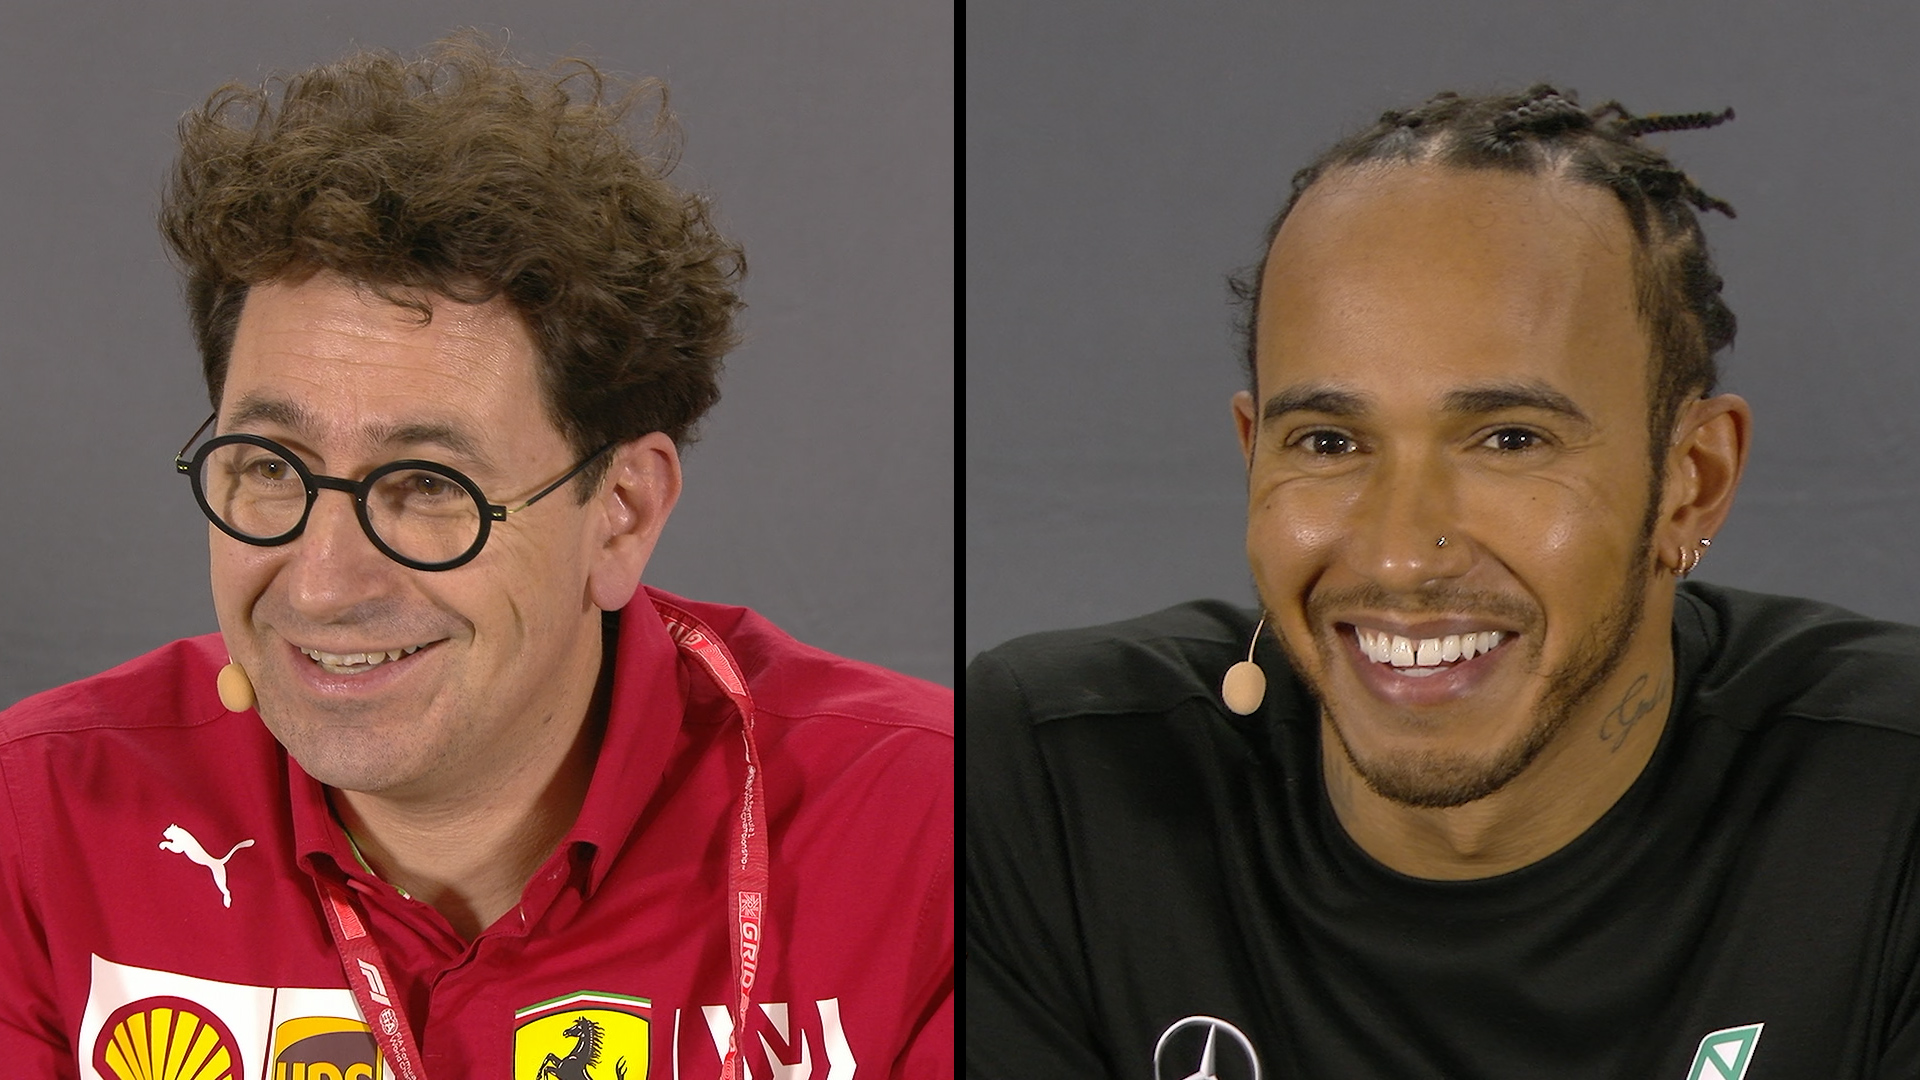 Lewis Hamilton: 'That's the first compliment I've had from Ferrari in 13  years'